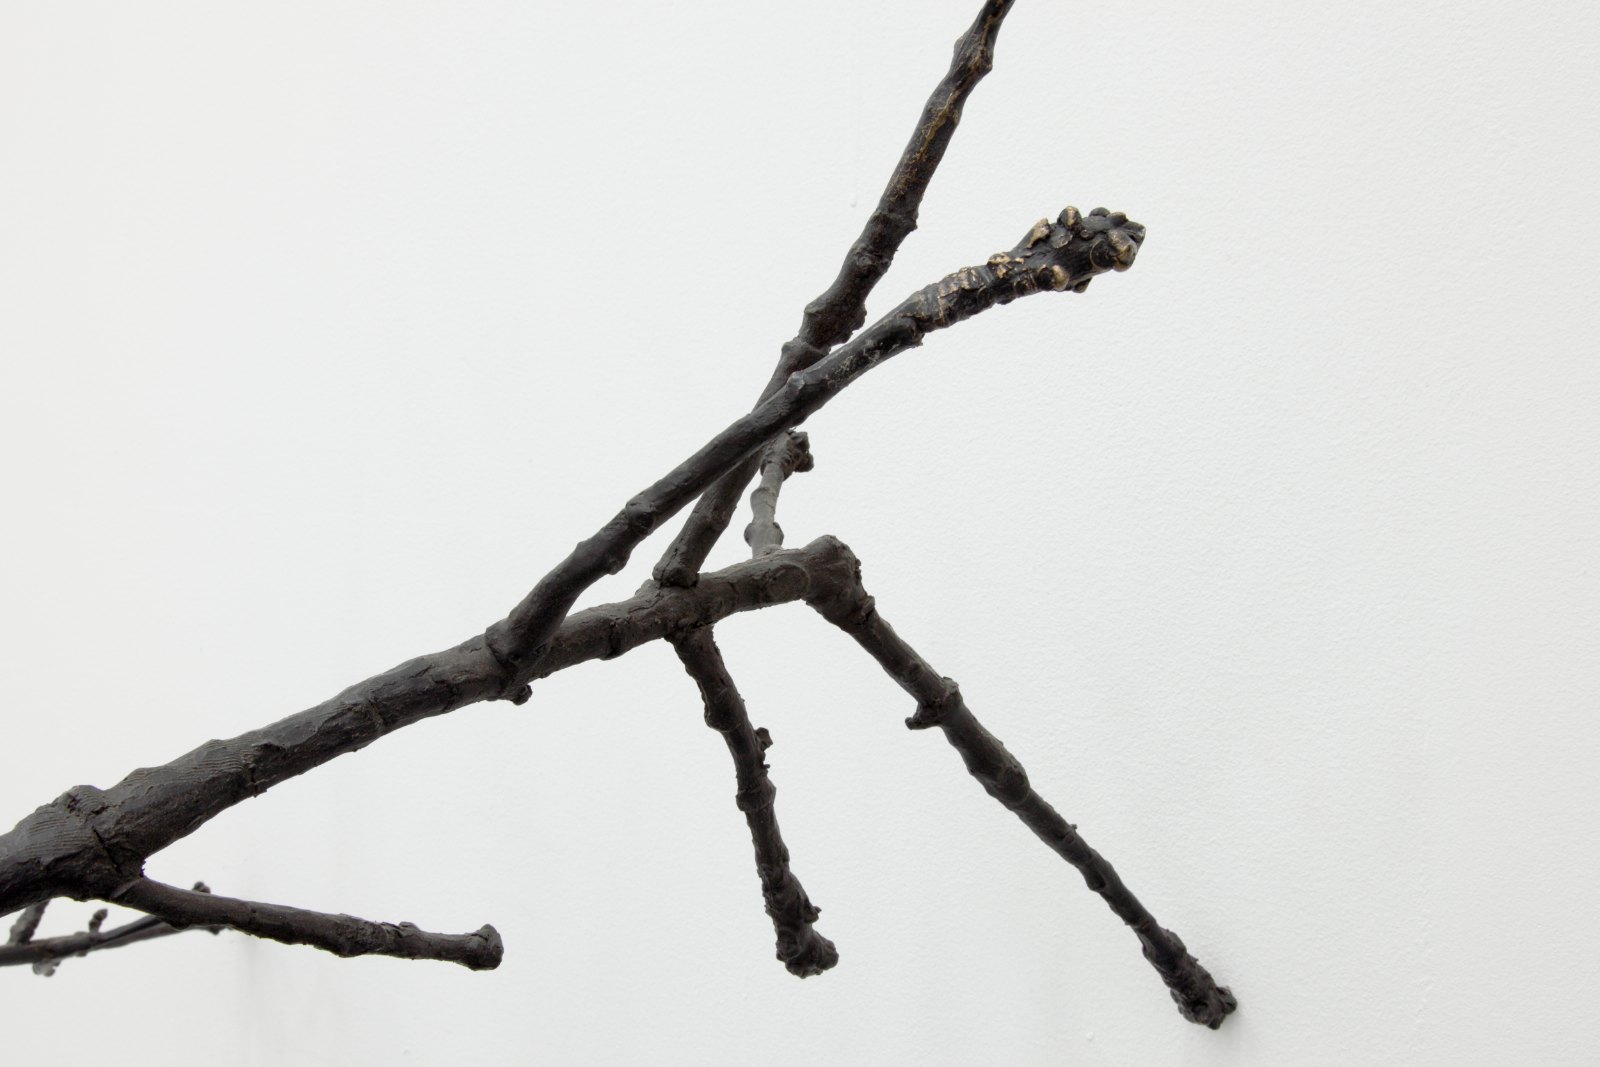 Andreas Eriksson, A Second Time, 2007, detail